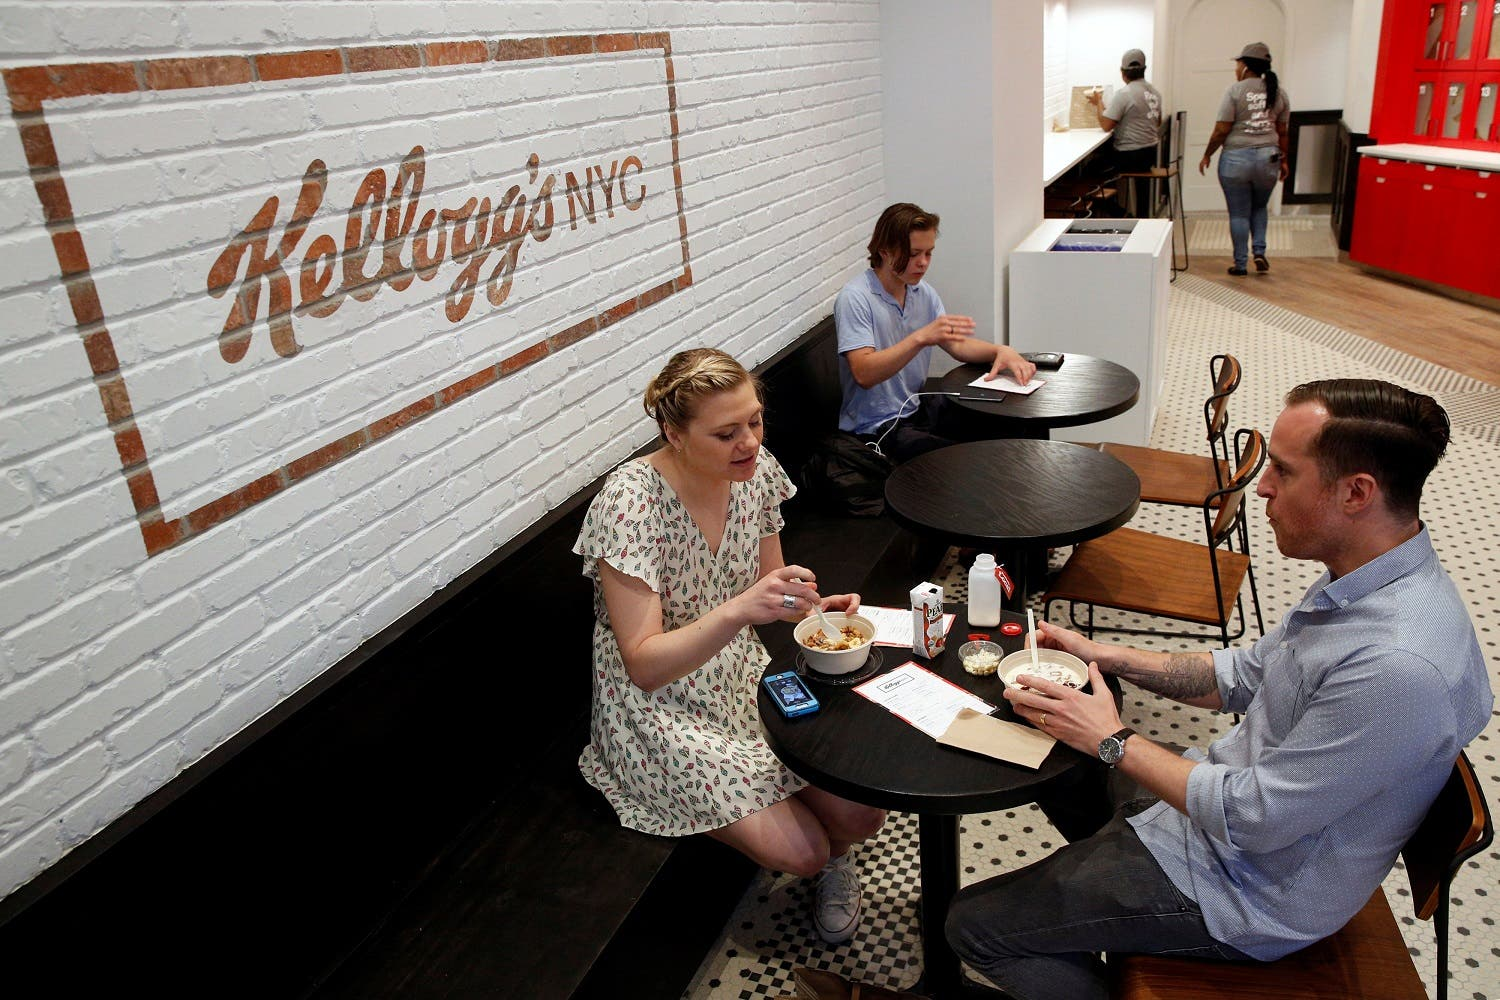 Guests eat cereal at the Kellogg's NYC cafe in Midtown Manhattan in New York City, U.S., June 29, 2016. REUTERS